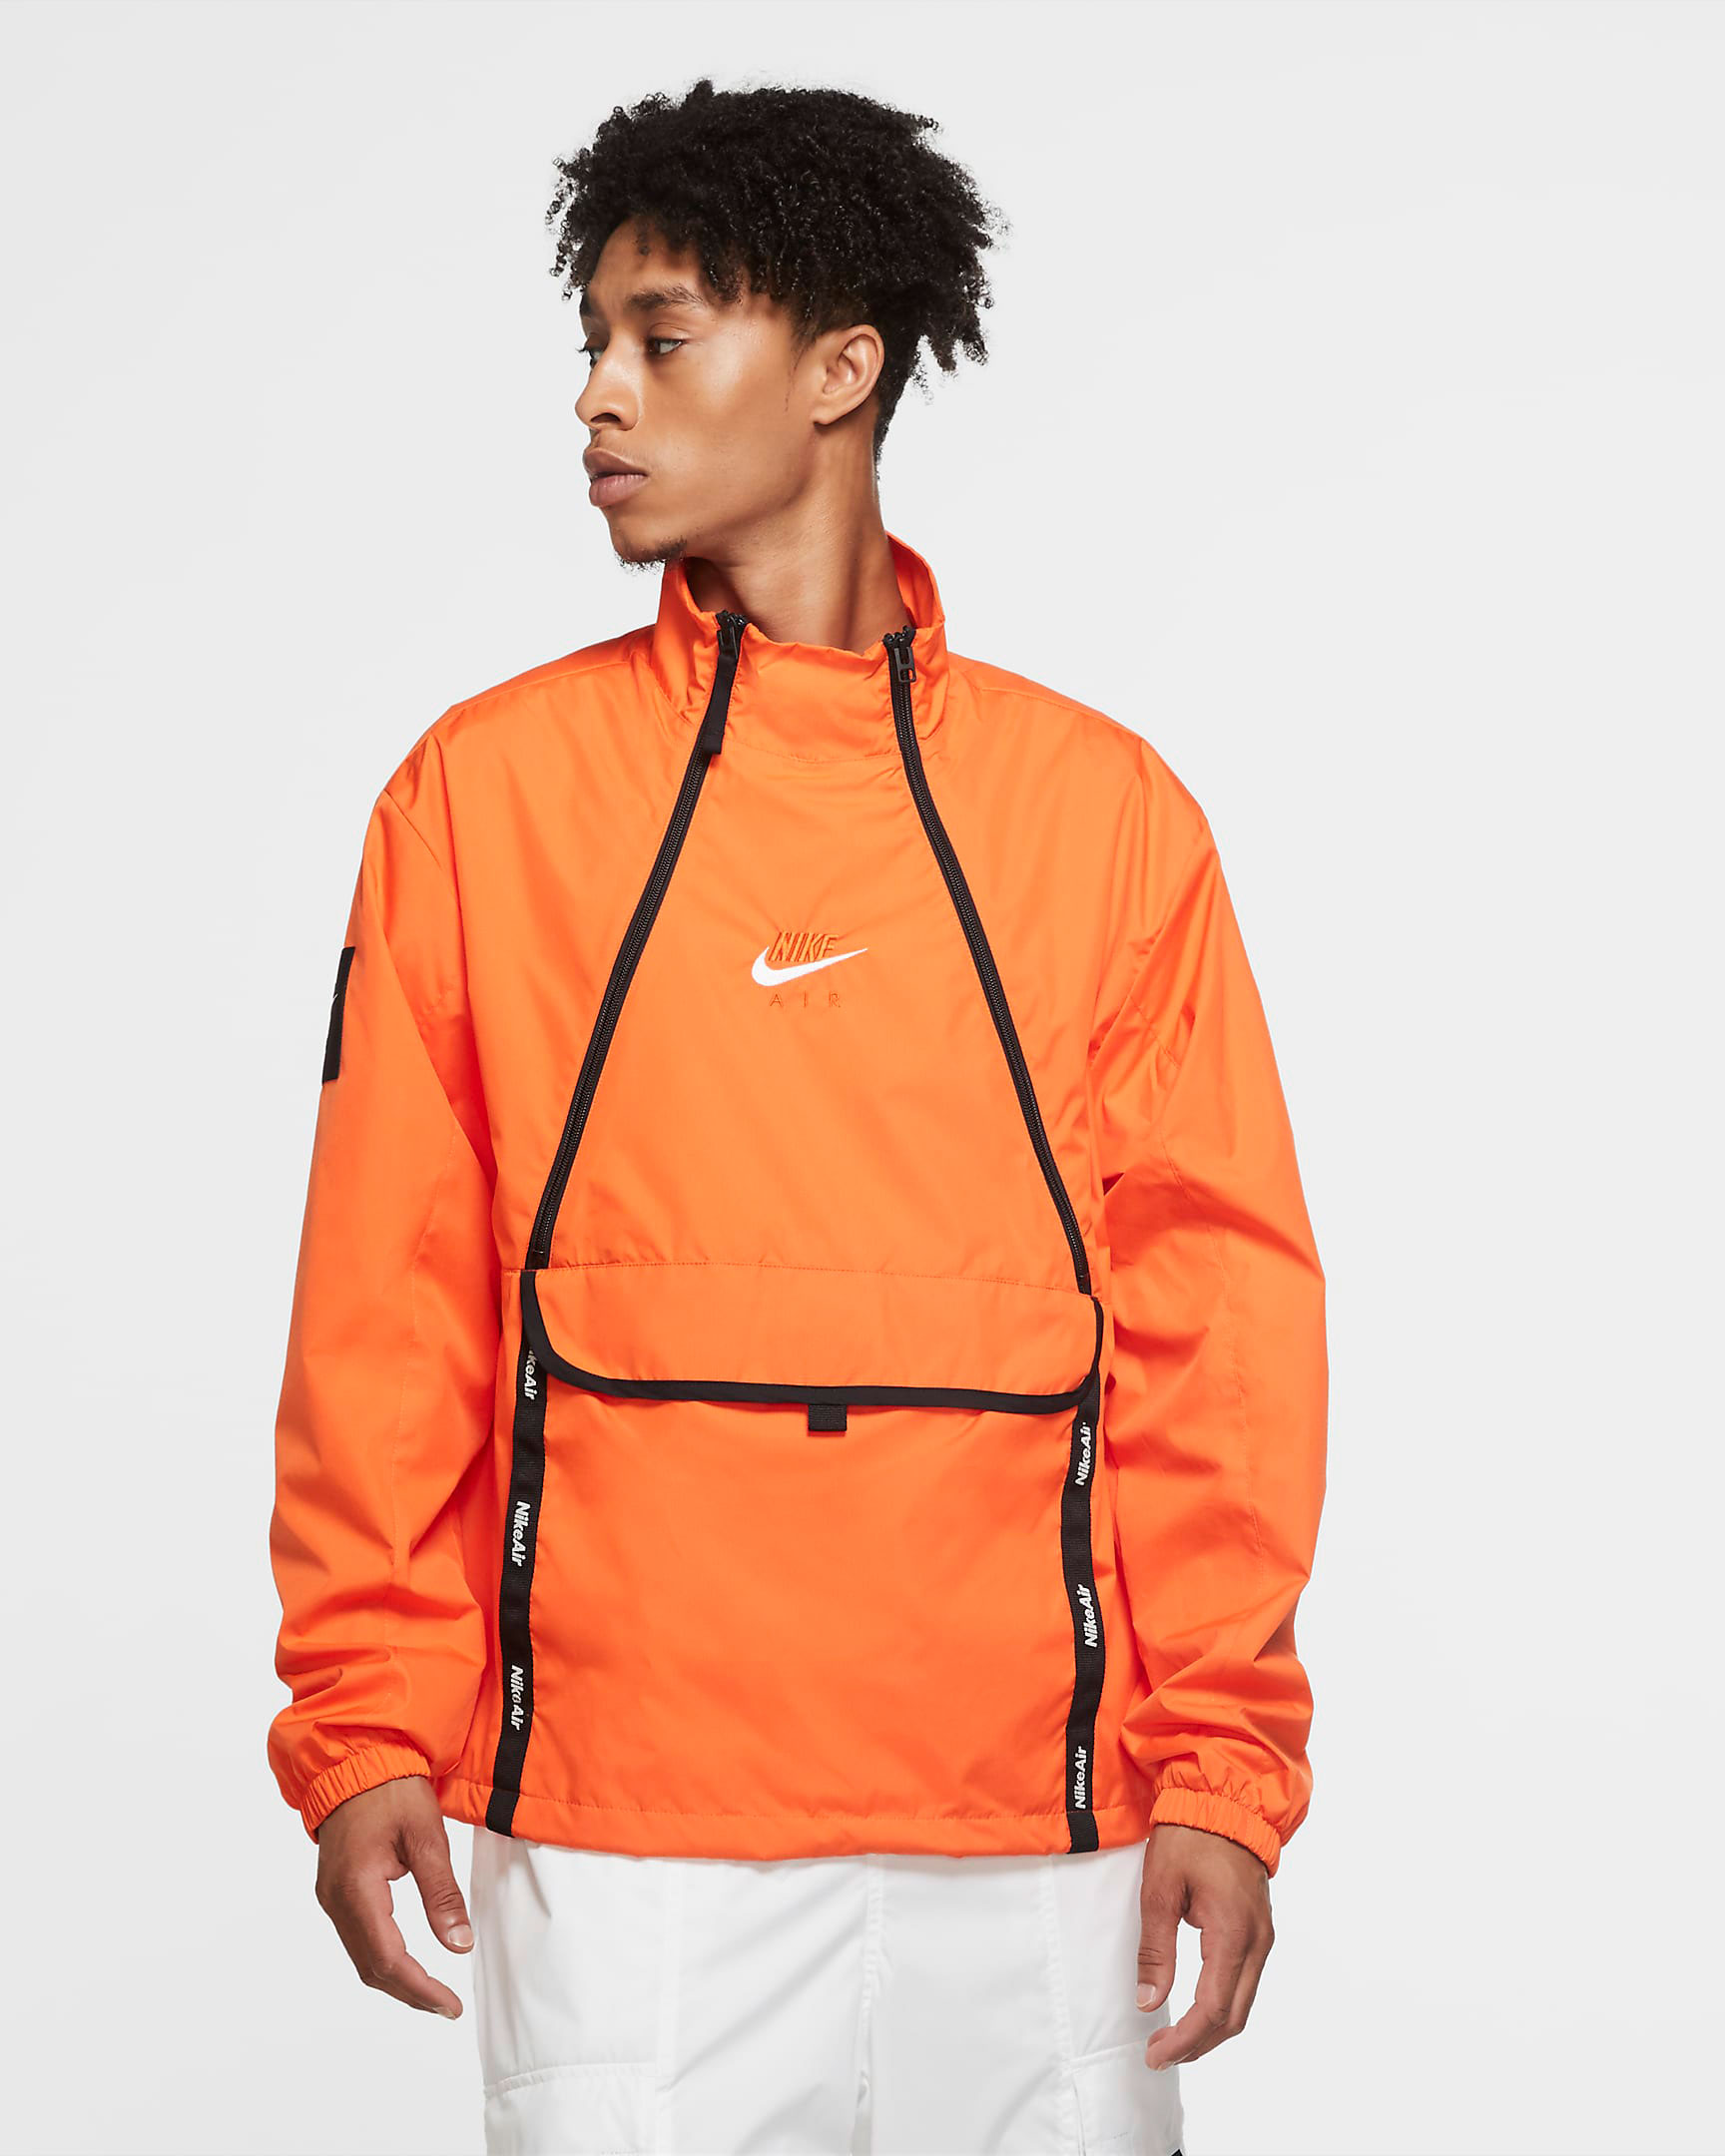 nike-air-orange-jacket-1